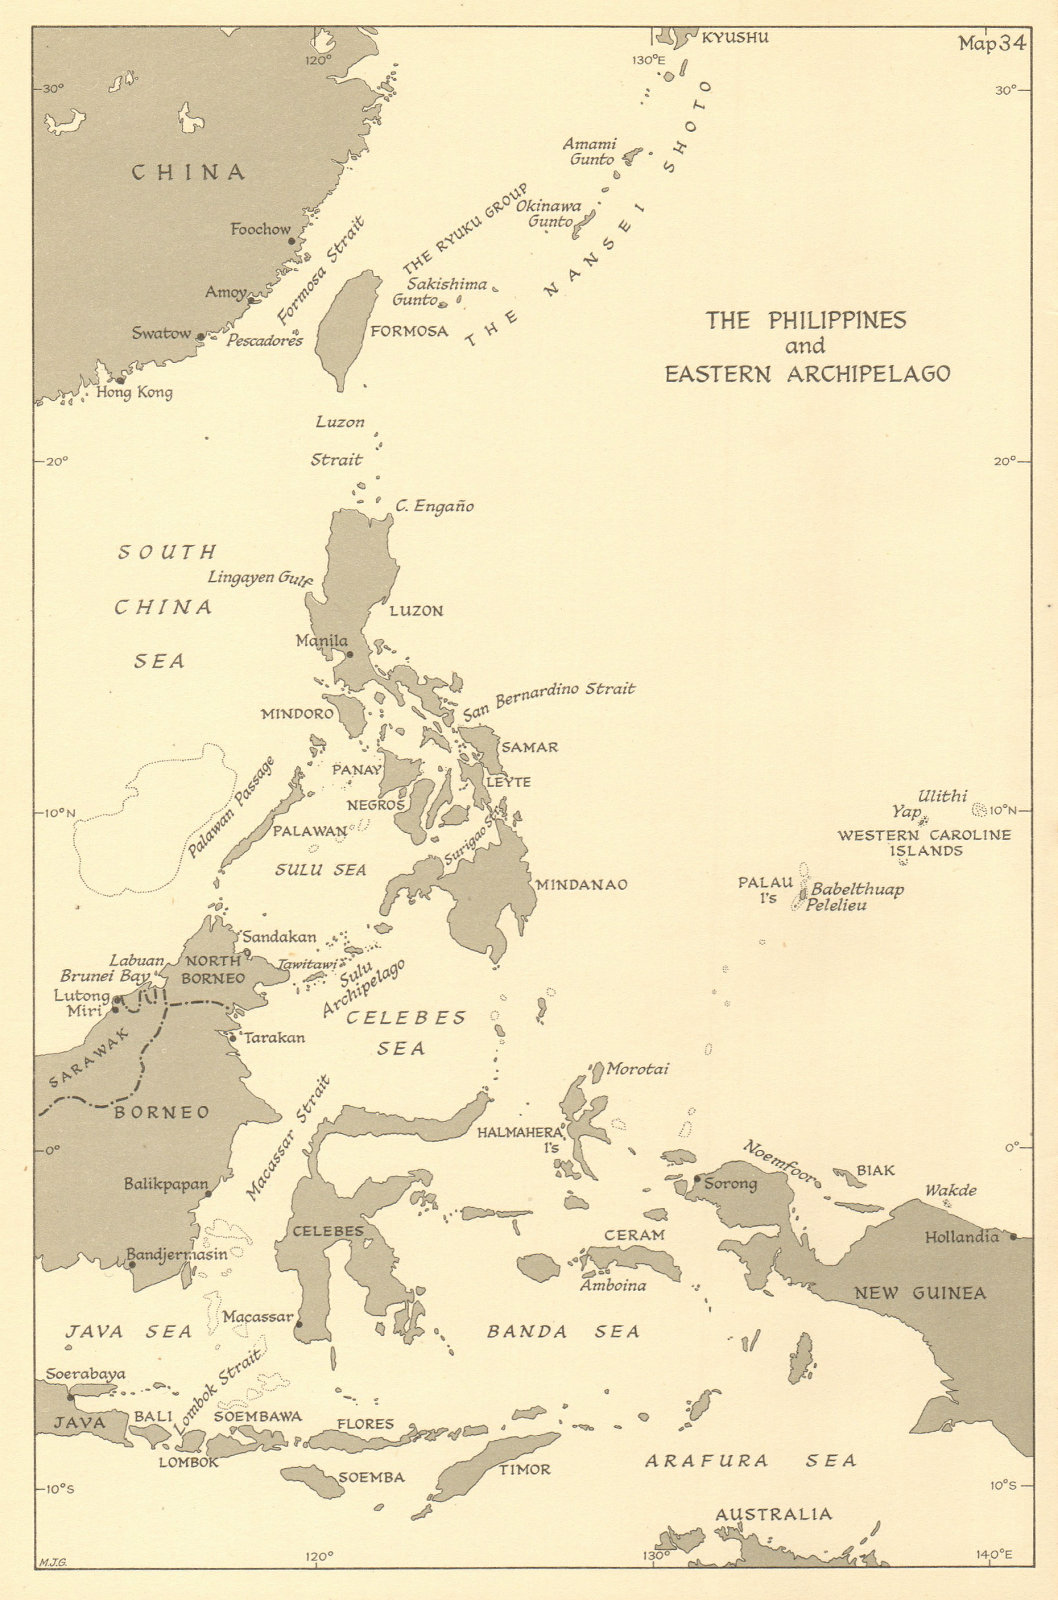 Associate Product Philippines & Eastern Archipelago in 1944. Pacific Theatre. World War 2 1961 map